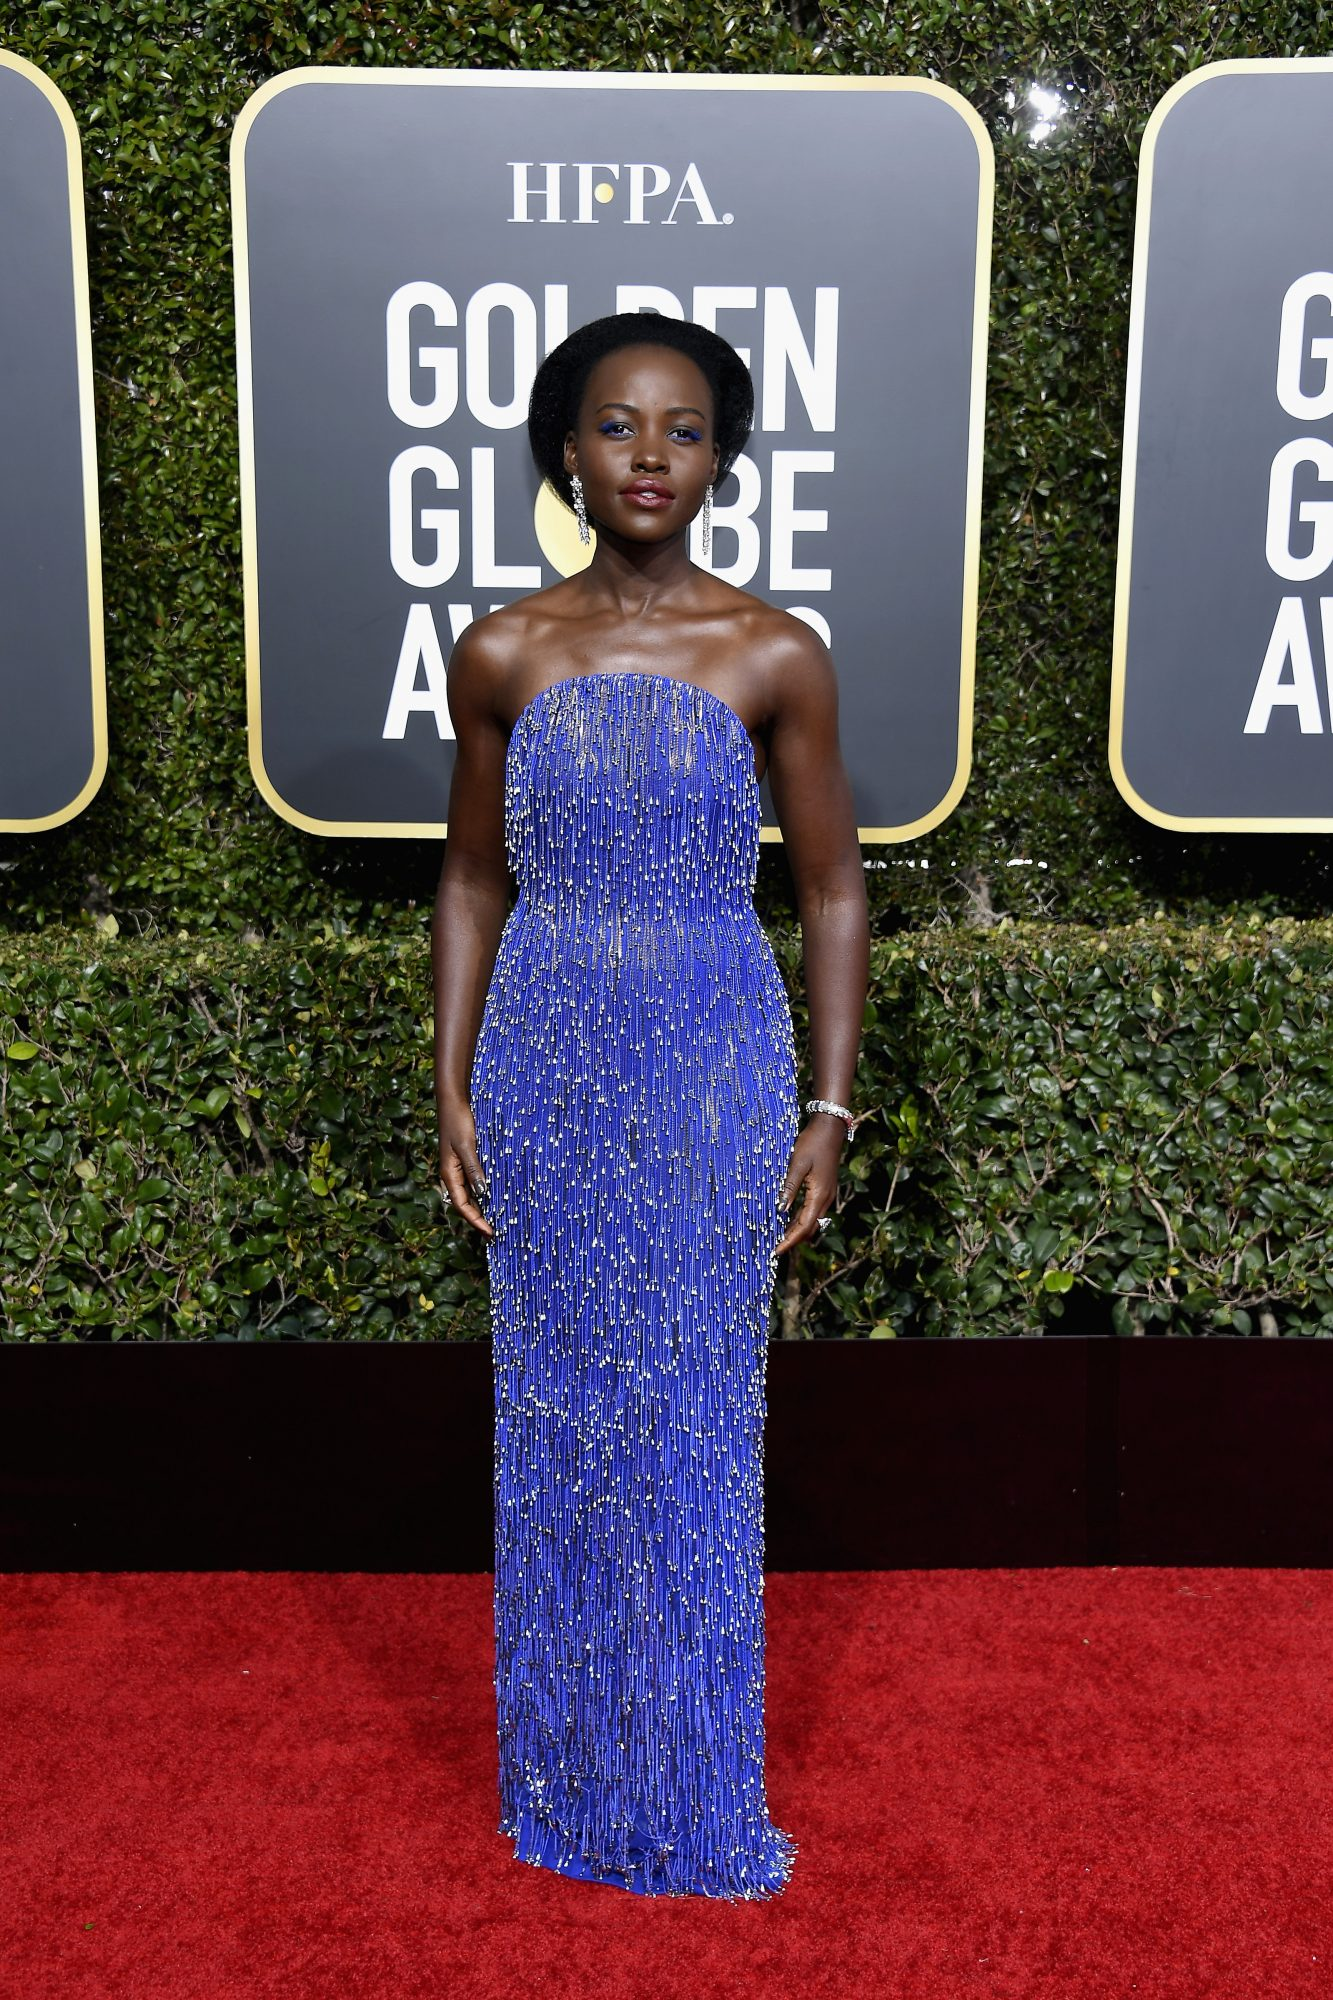 Lupita Nyong'o Won the Oscars Red Carpet without Even Walking It